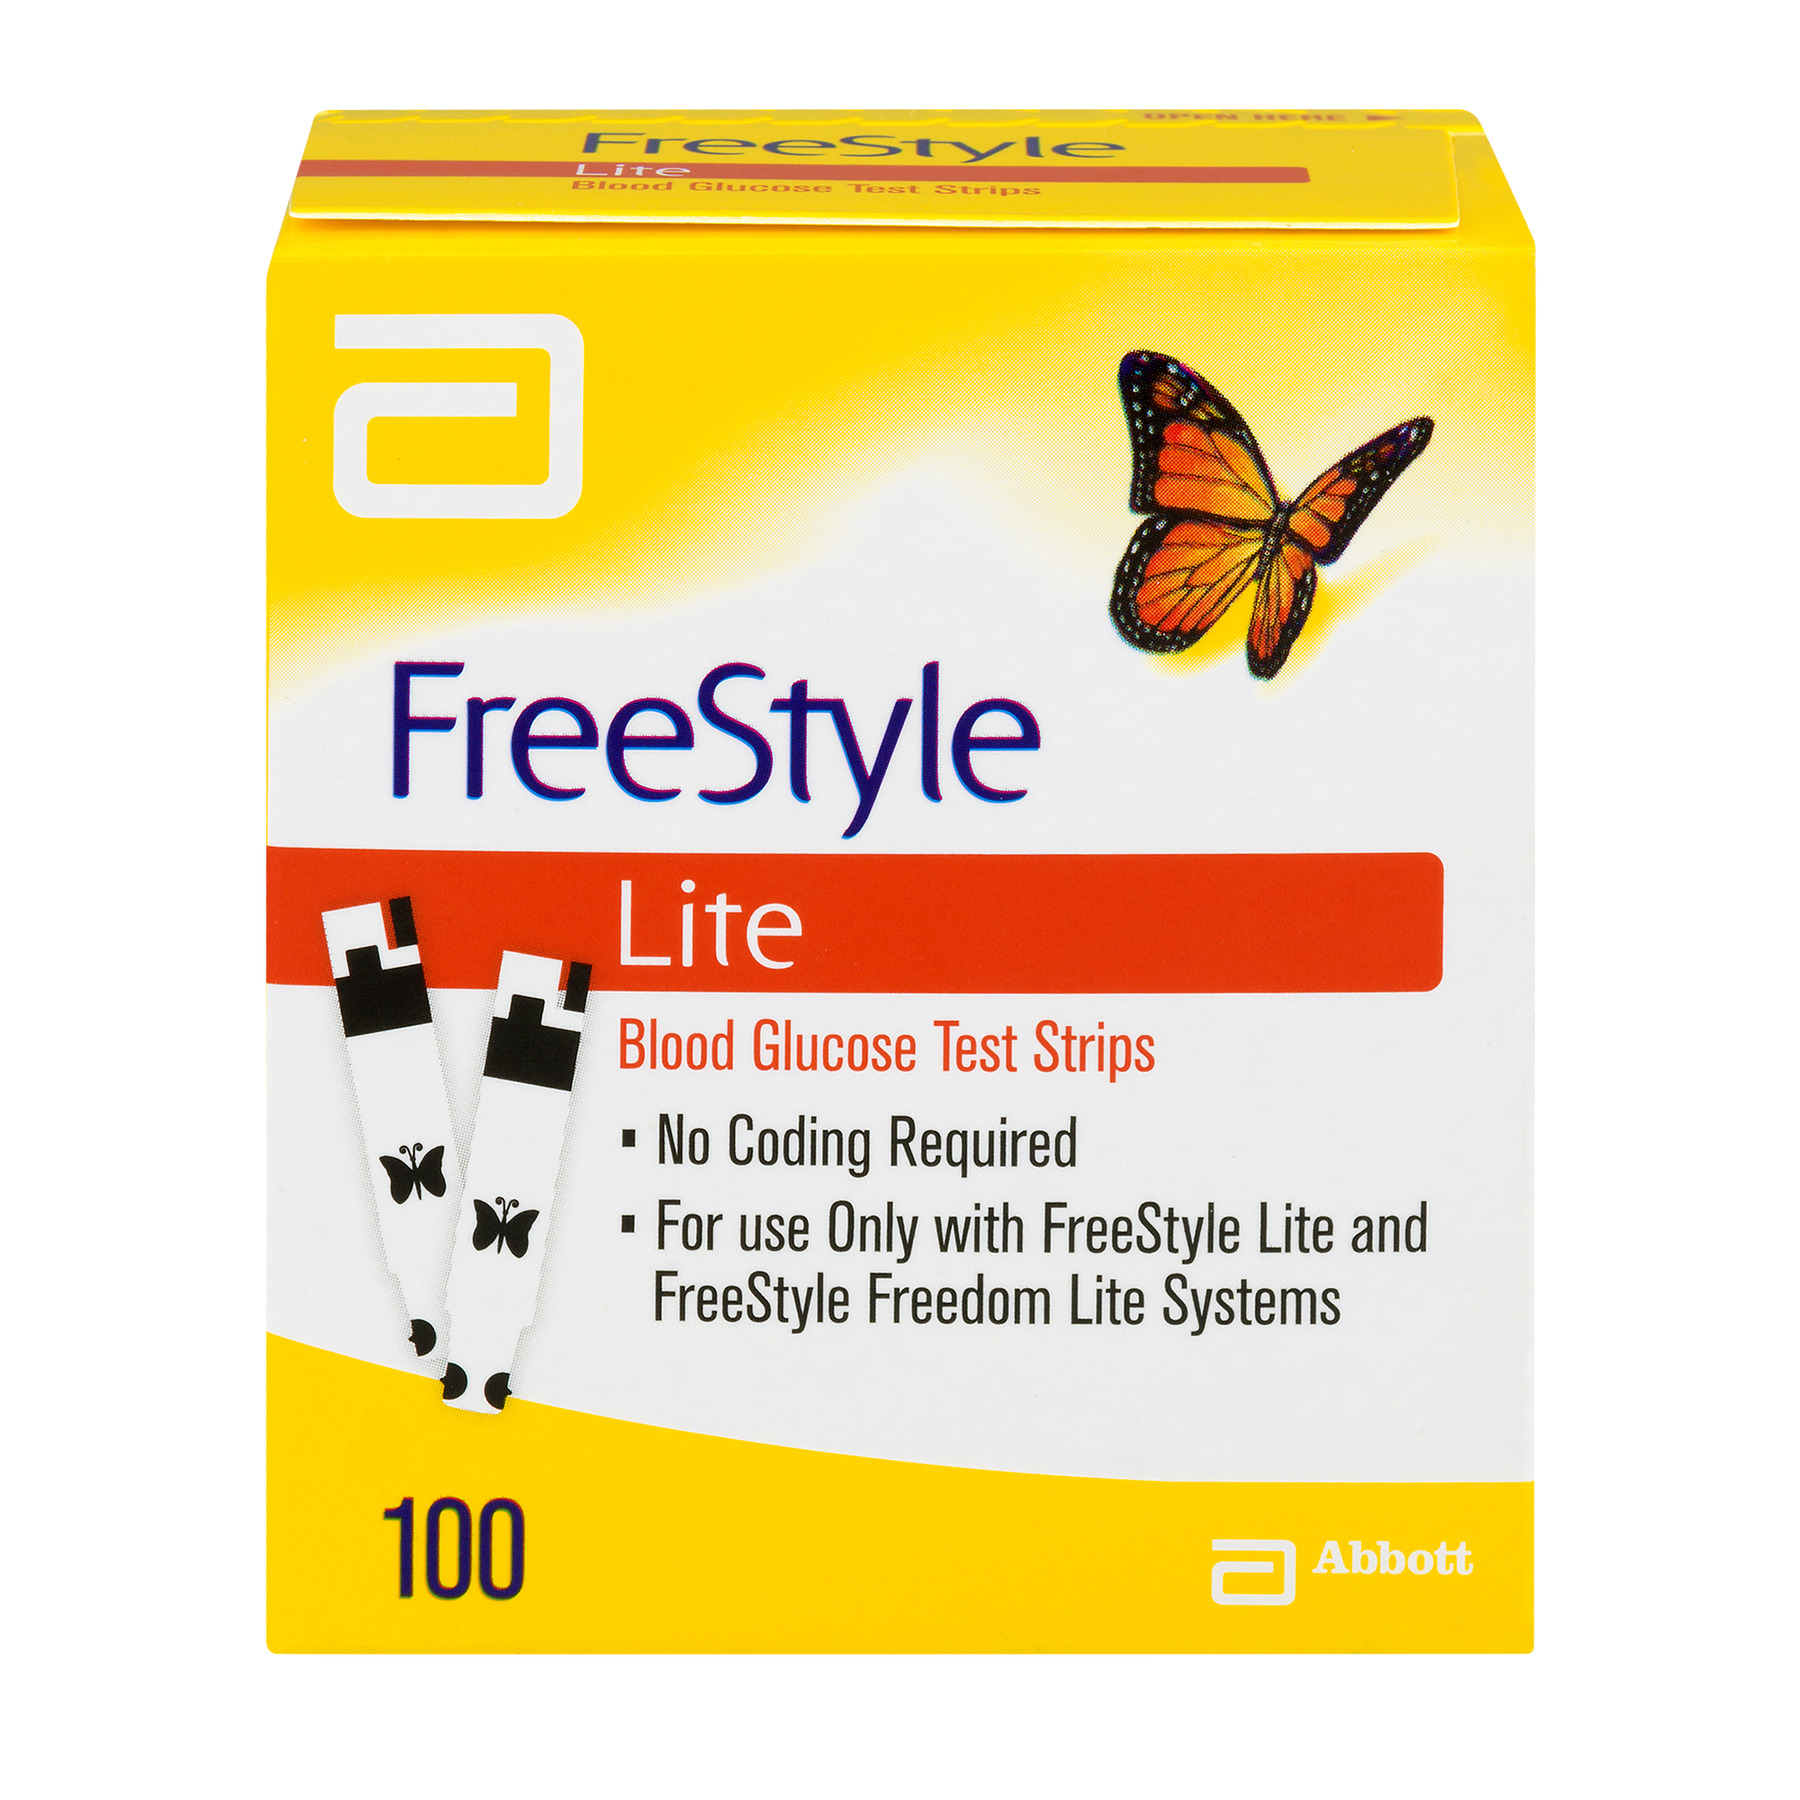 FreeStyle Lite Blood Glucose Test Strips - 100 CT100.0 CT